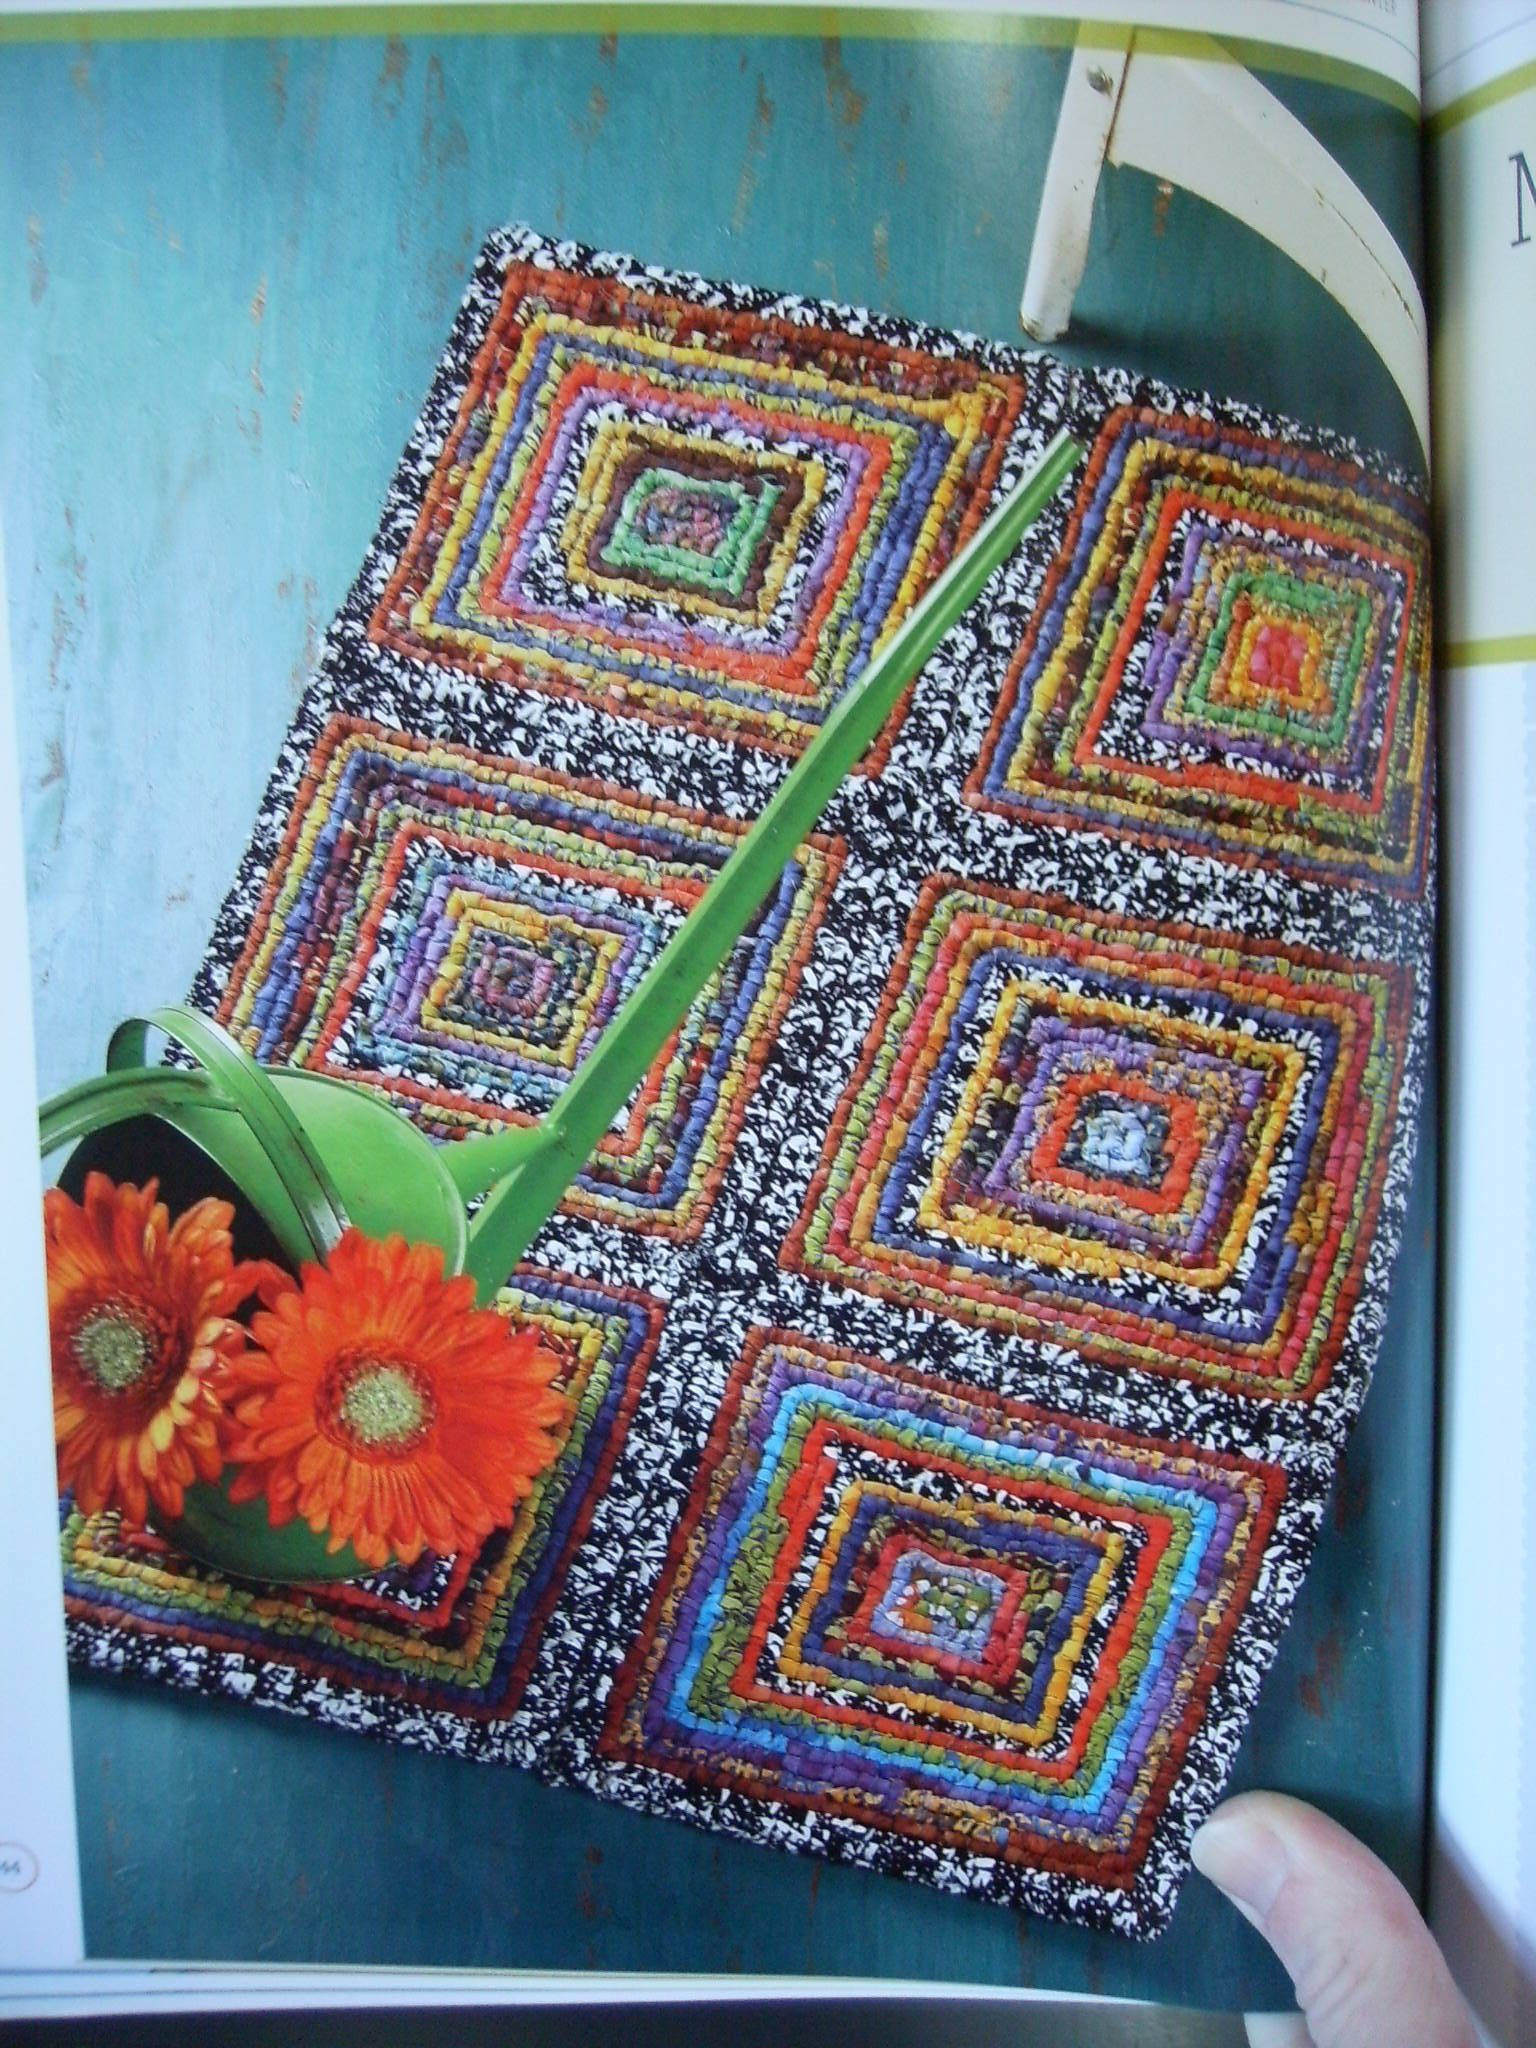 Locker Hooking Rugs Instructions | LOCKER HOOKING CROCHET - Crochet — Learn How to Crochet